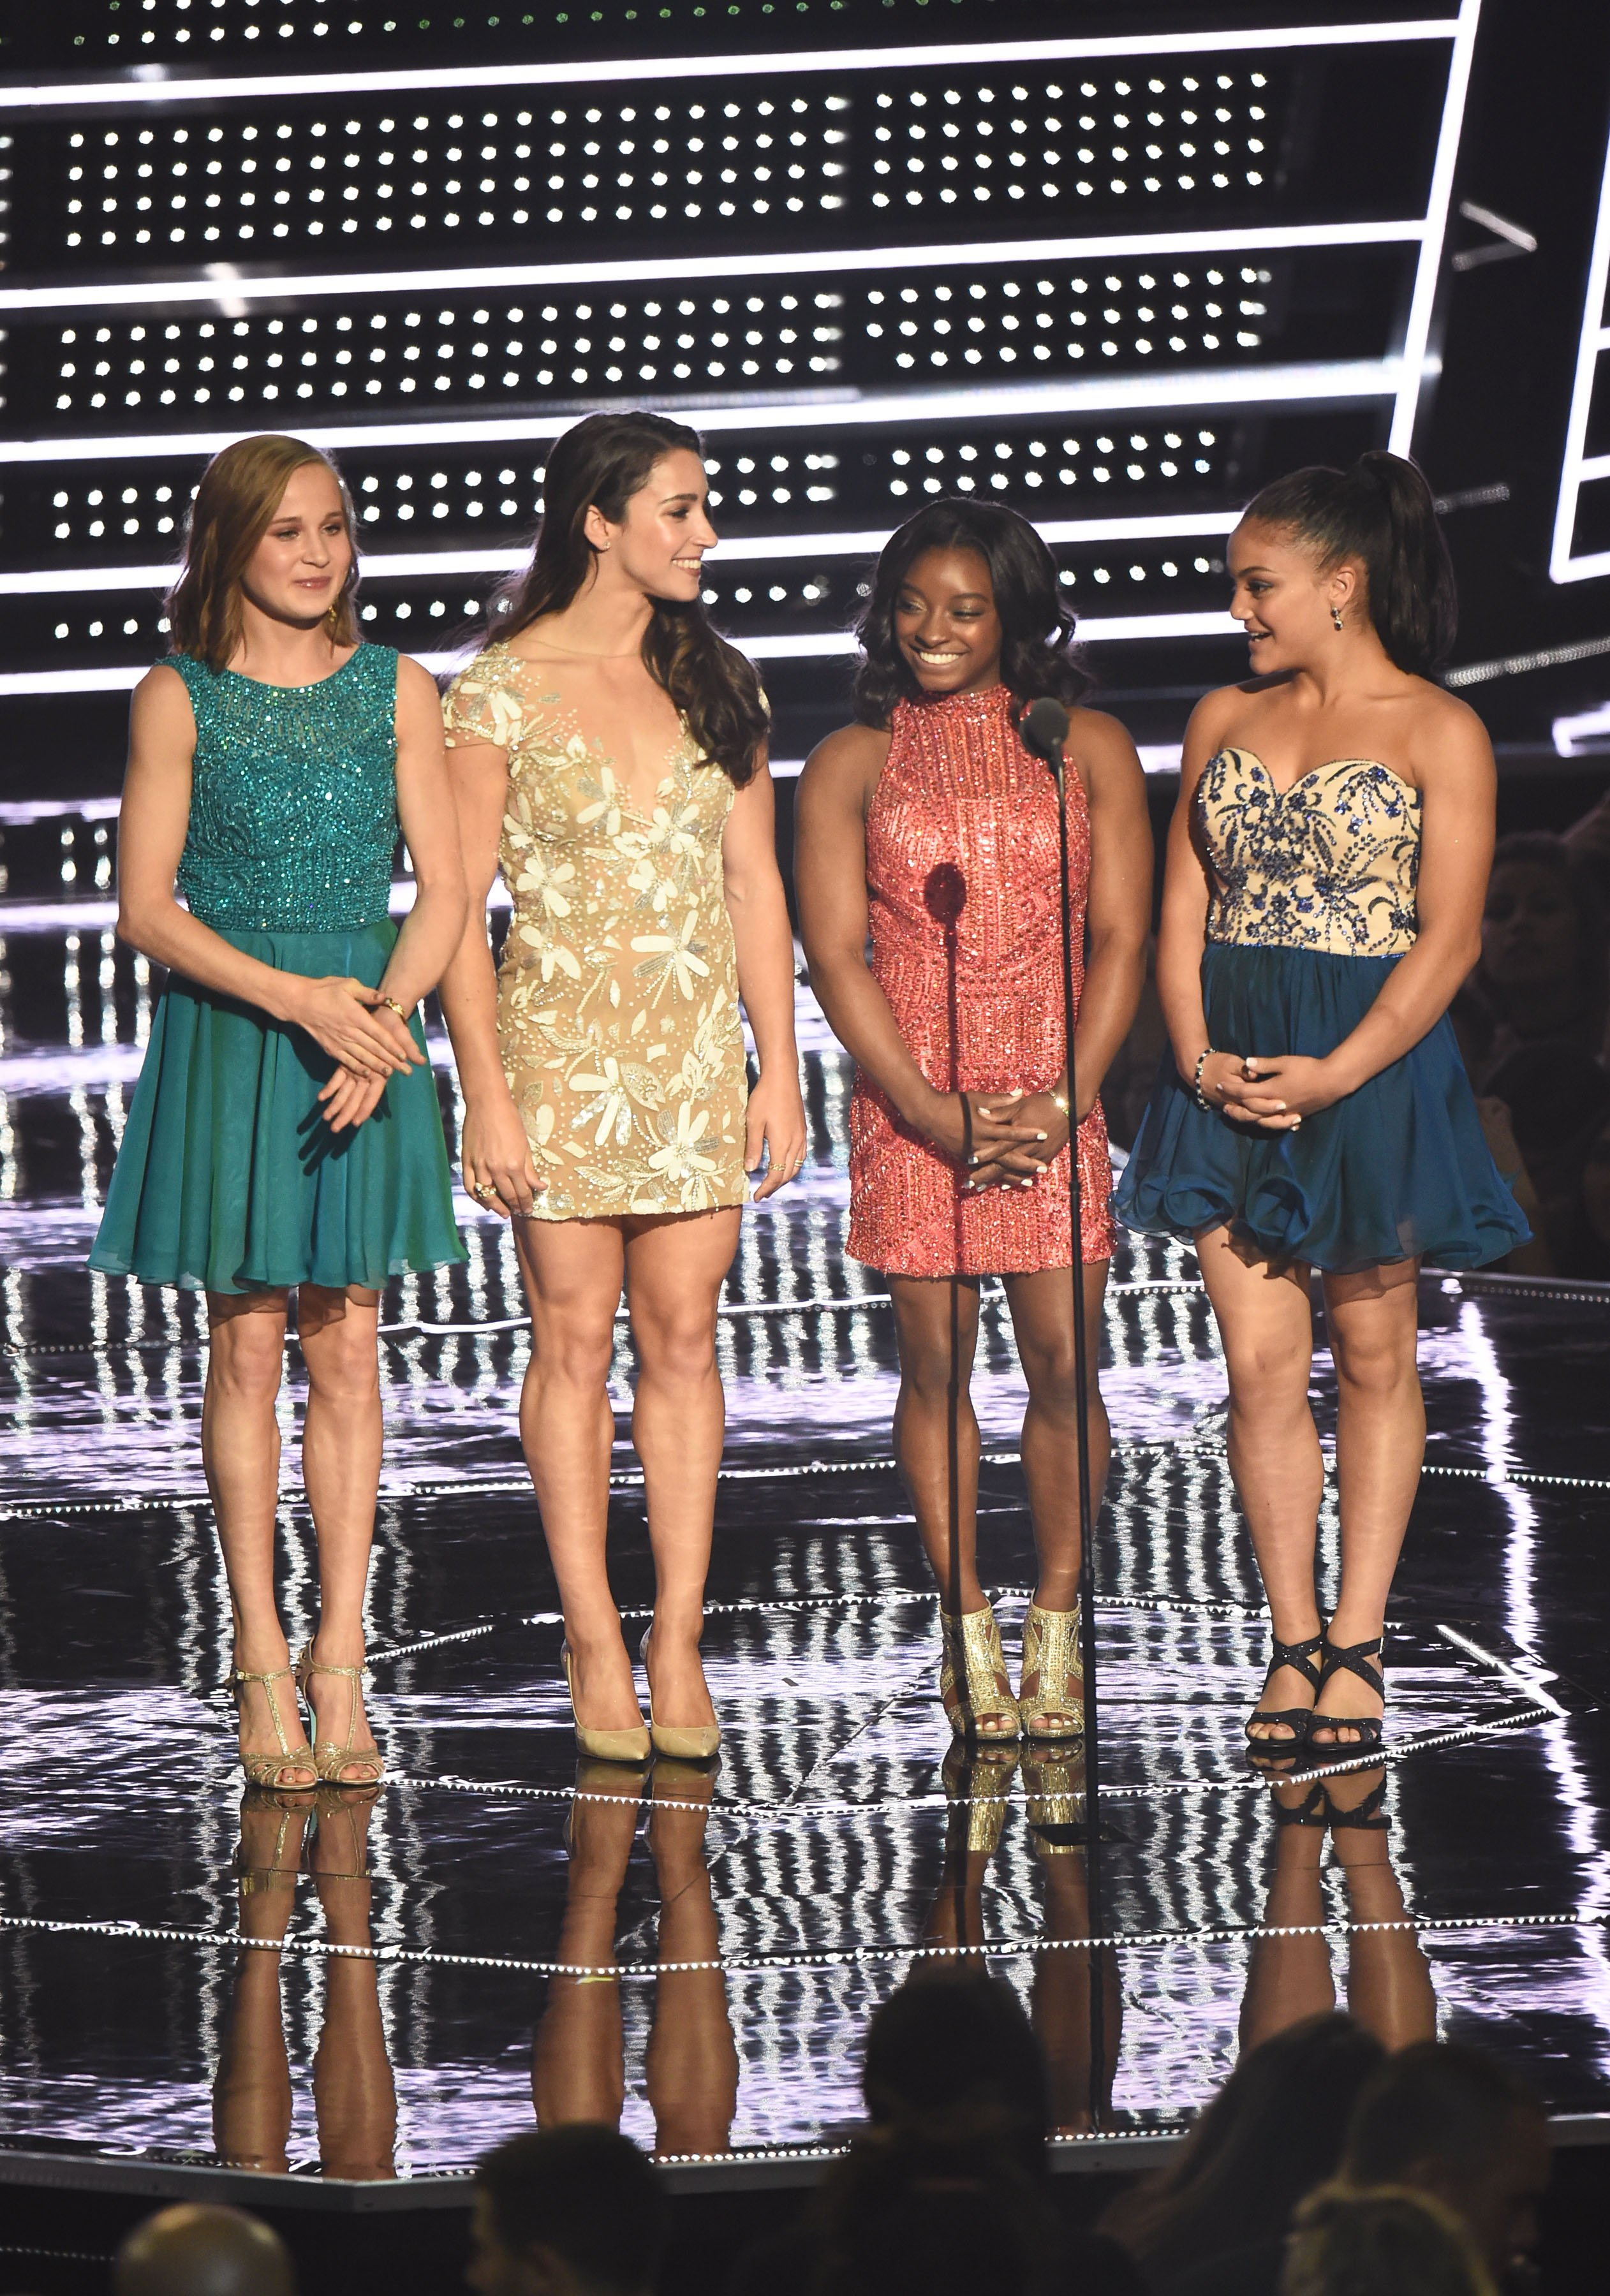 Madison Kocian, Aly Raisman, Simone Biles and Laurie Hernandez present Best Female Video onstage during the 2016 MTV Video Music Awards at Madison Square Garden on August 28, 2016 in New York Cit